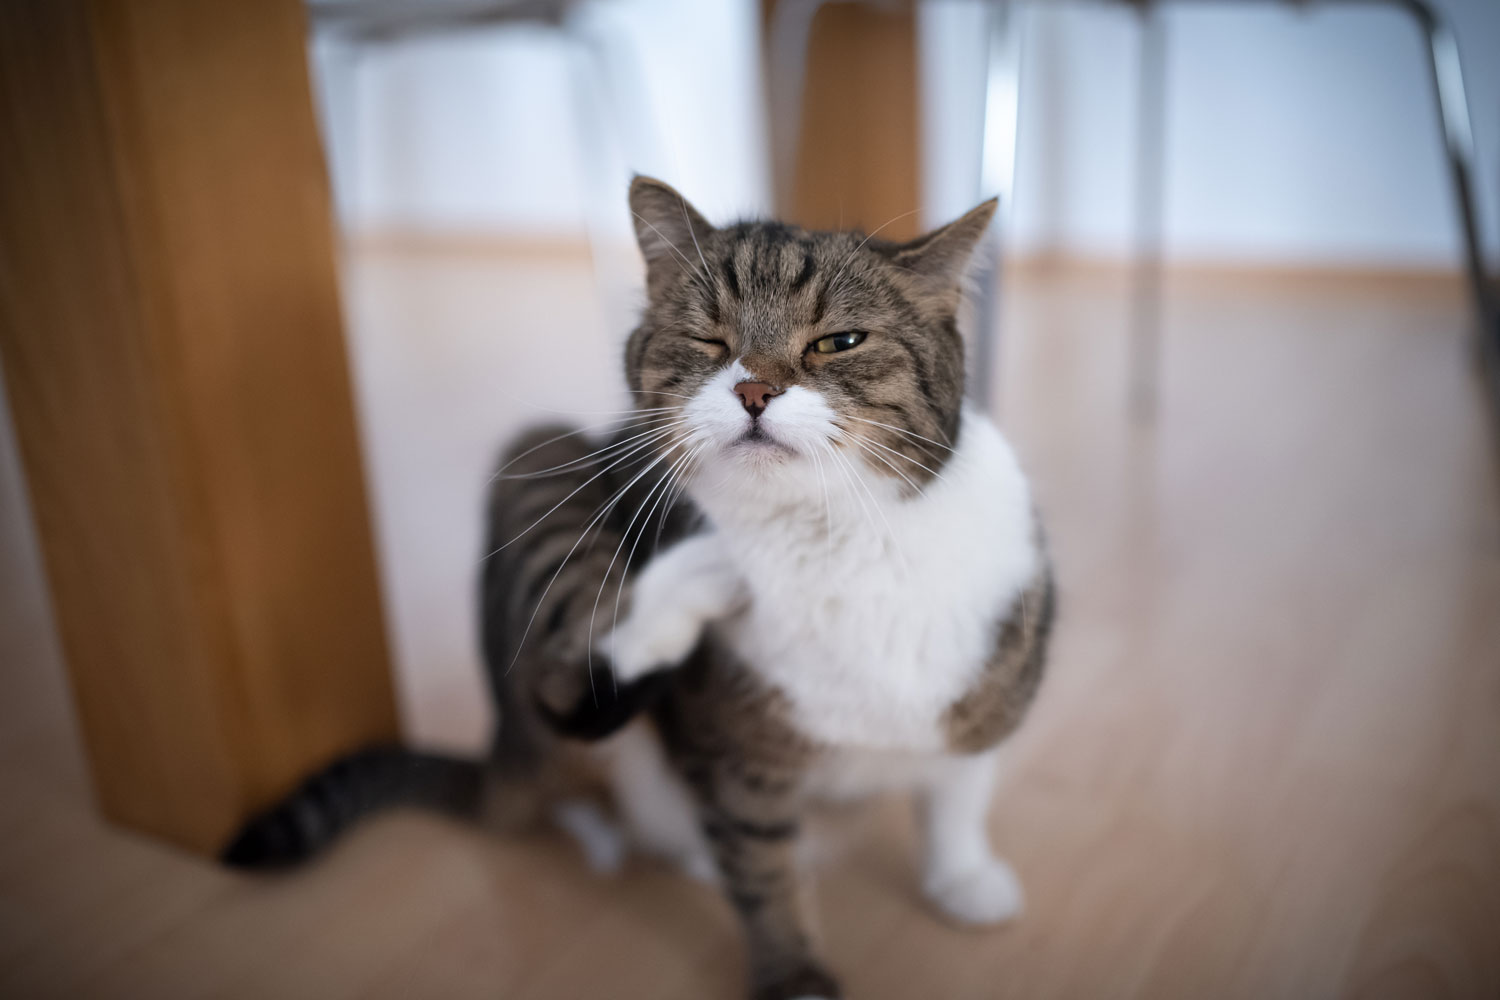 A tabby white British shorthair cat scratching his neck